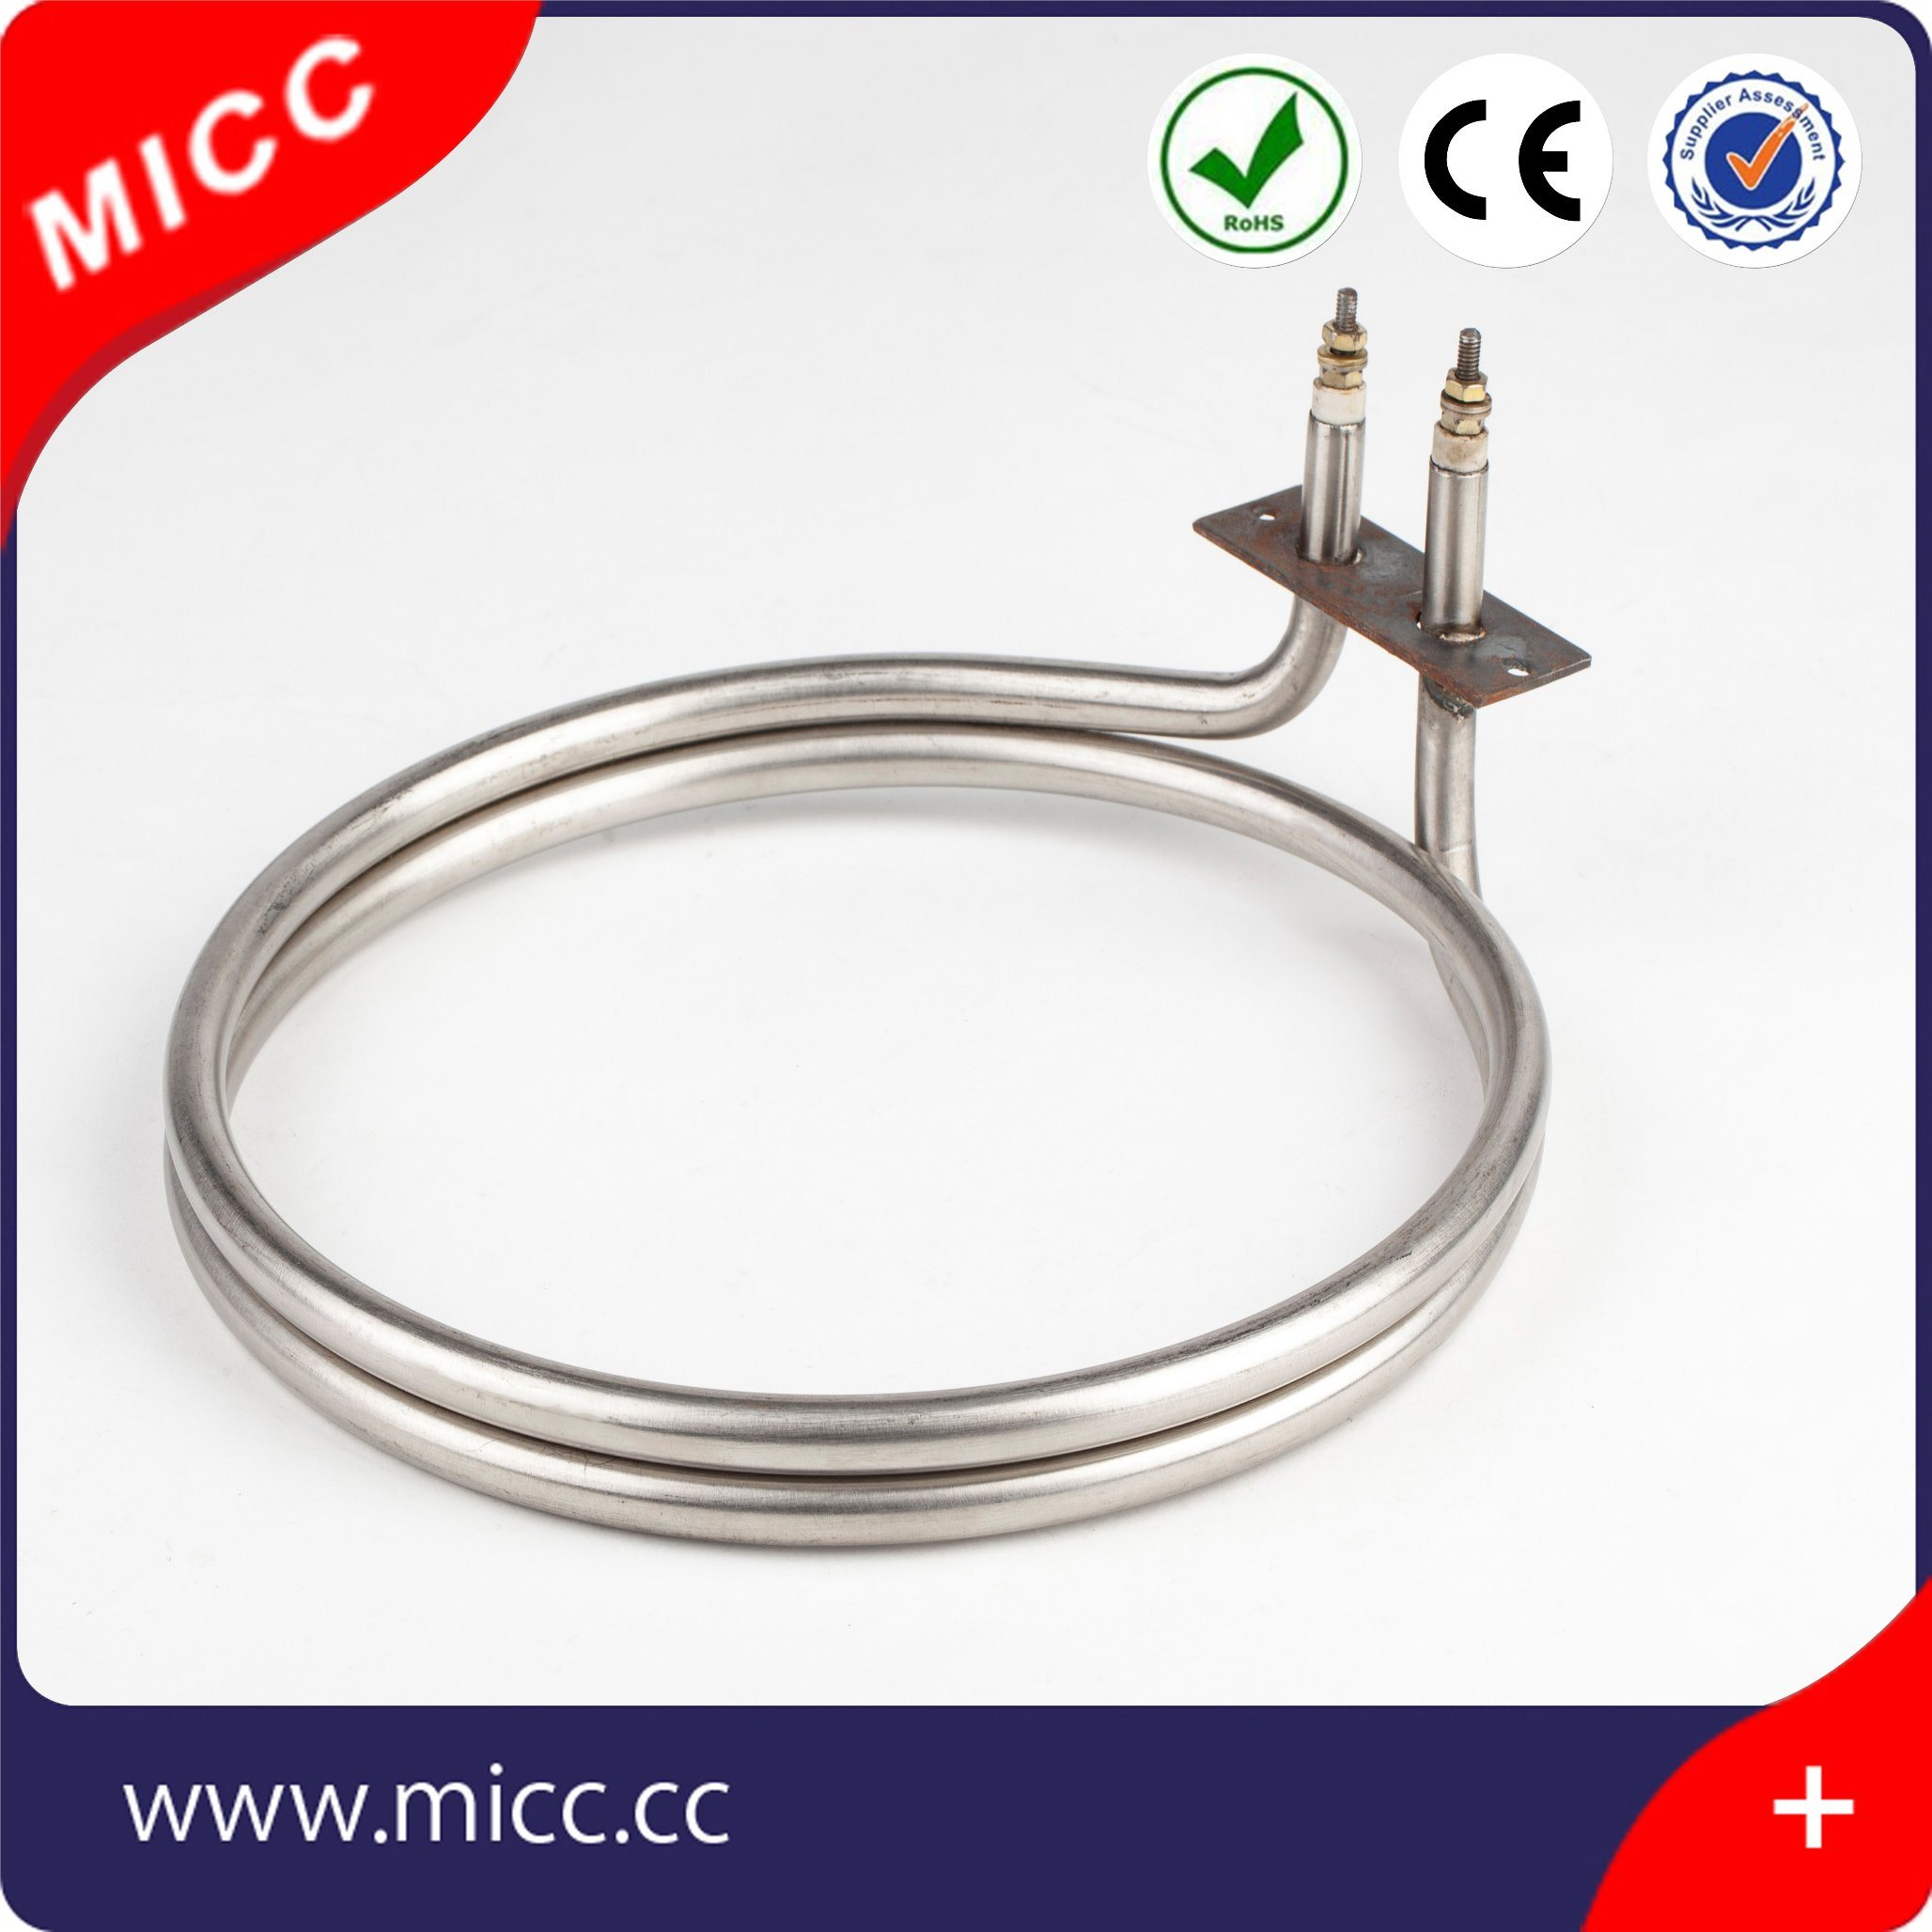 Micc Boiling Water Tubular Heater with Different Types